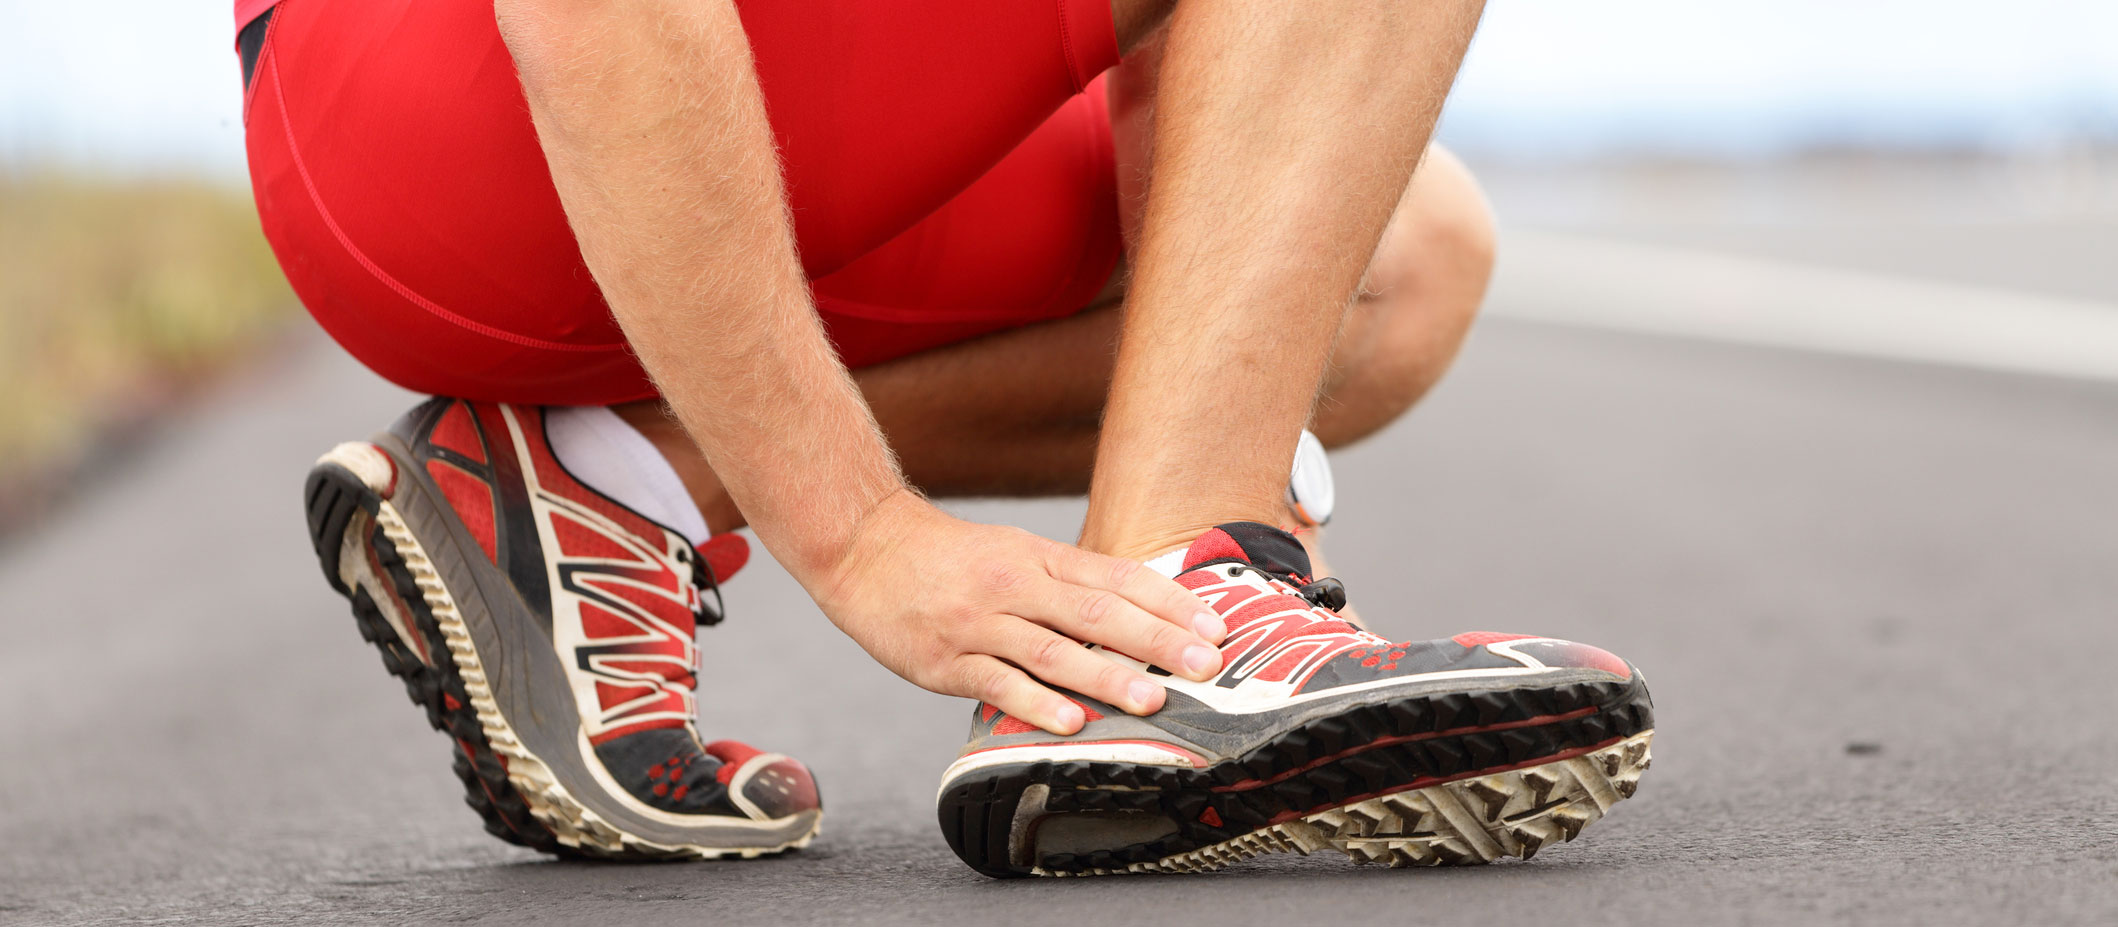 running-shoe-injury